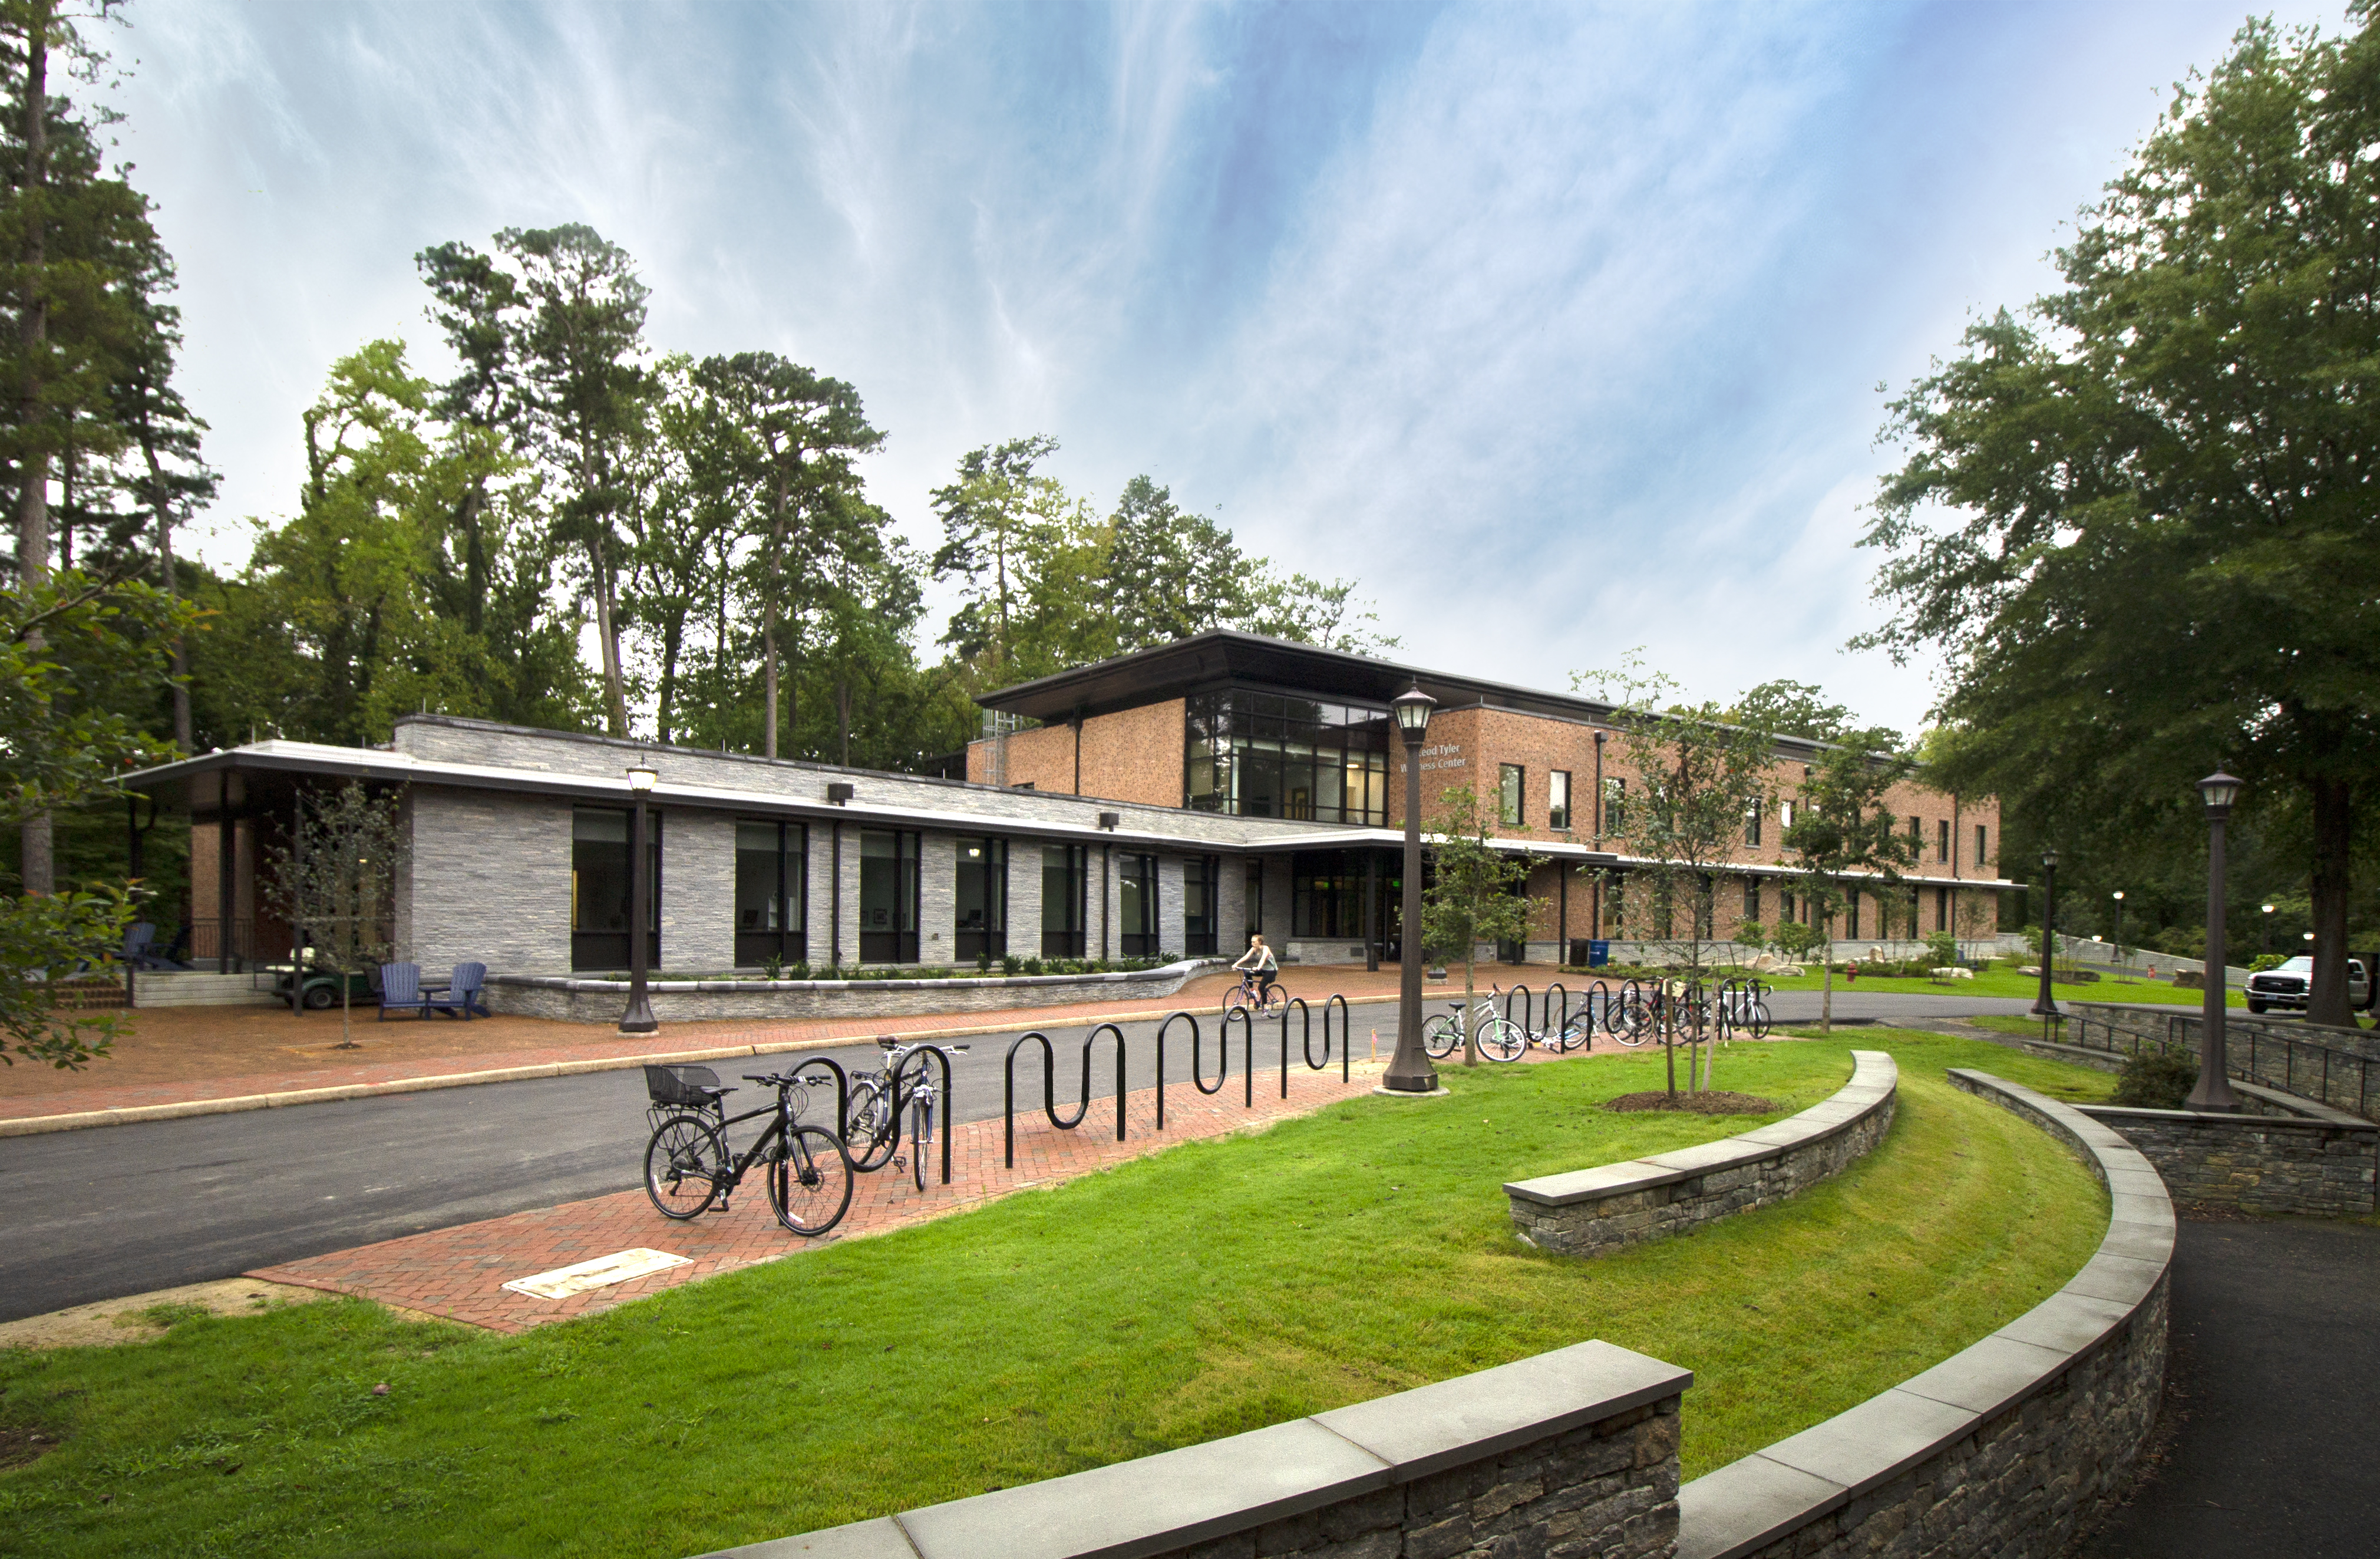 HENRY ADAMS provided the MEP engineering design the integrated wellness center.